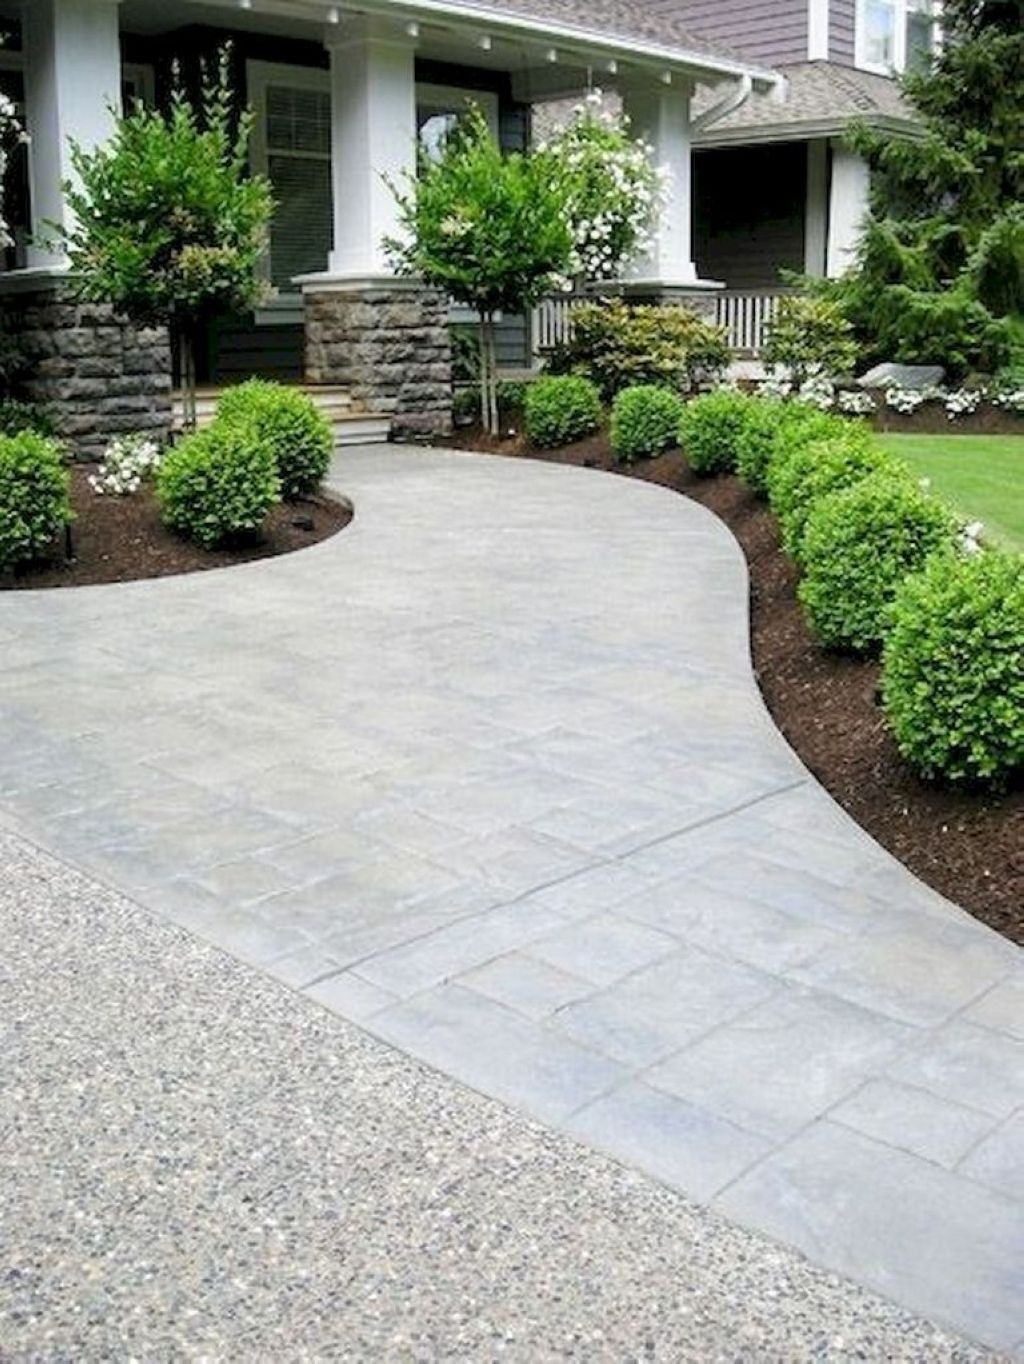 Superb Front Yard Walkway Ideas Part - 6: Amazing Front Yard Walkway Landscaping Ideas 19 - TOPARCHITECTURE